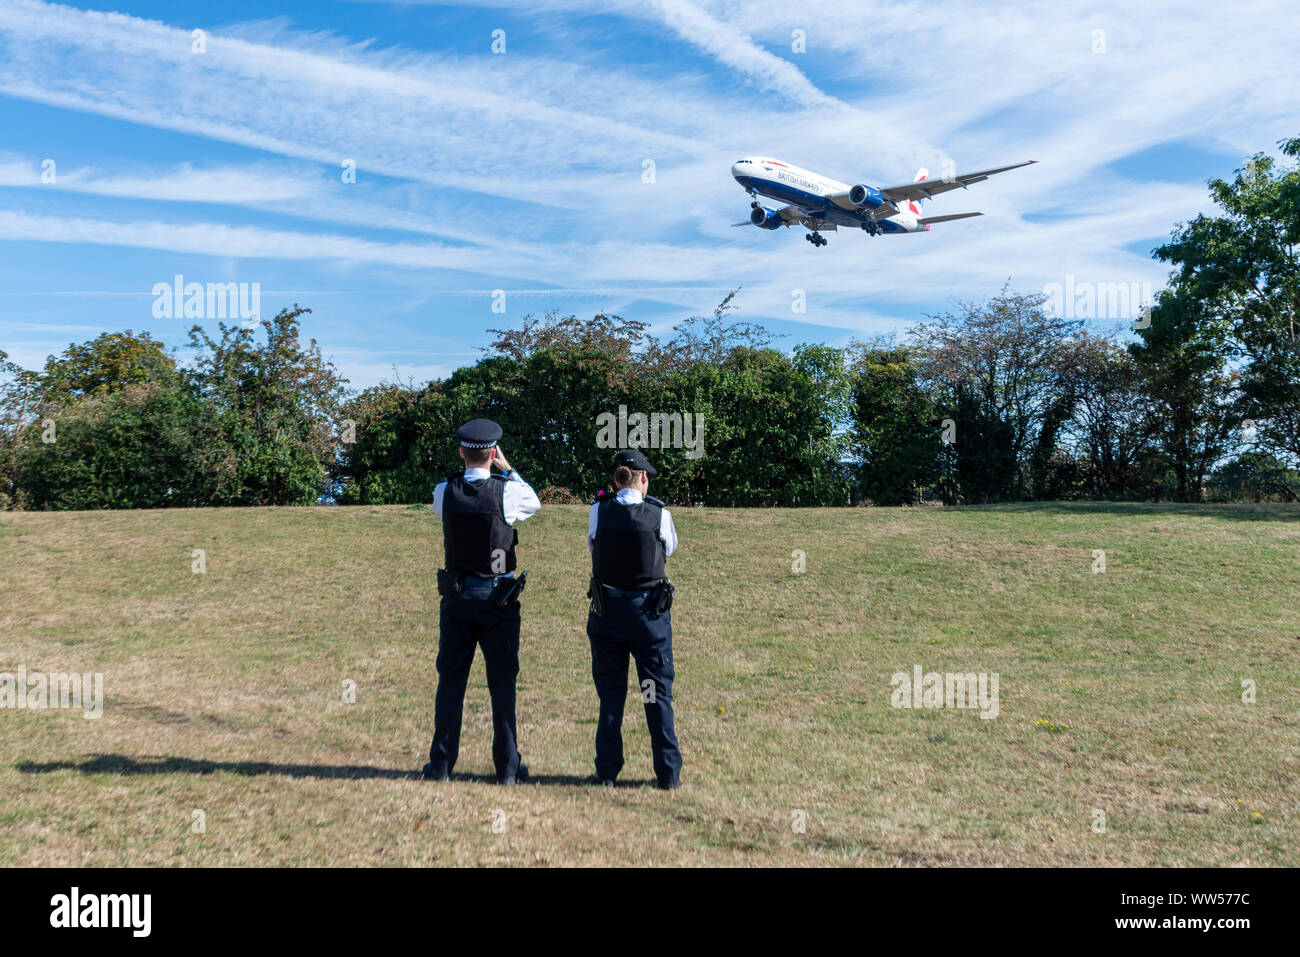 a-group-calling-themselves-heathrow-pause-action-have-warned-that-they-plan-to-fly-drones-within-the-restricted-areas-around-london-heathrow-airport-with-the-aim-of-disrupting-flights-the-protesters-feel-that-despite-declaring-a-climate-emergency-the-governments-approval-of-a-third-runway-at-heathrow-negates-that-response-the-proposed-action-involves-numbers-of-people-flying-small-toy-sized-drones-within-the-5km-exclusion-zone-at-head-height-police-are-patrolling-the-area-and-thus-far-flight-operations-have-continued-WW577C.jpg